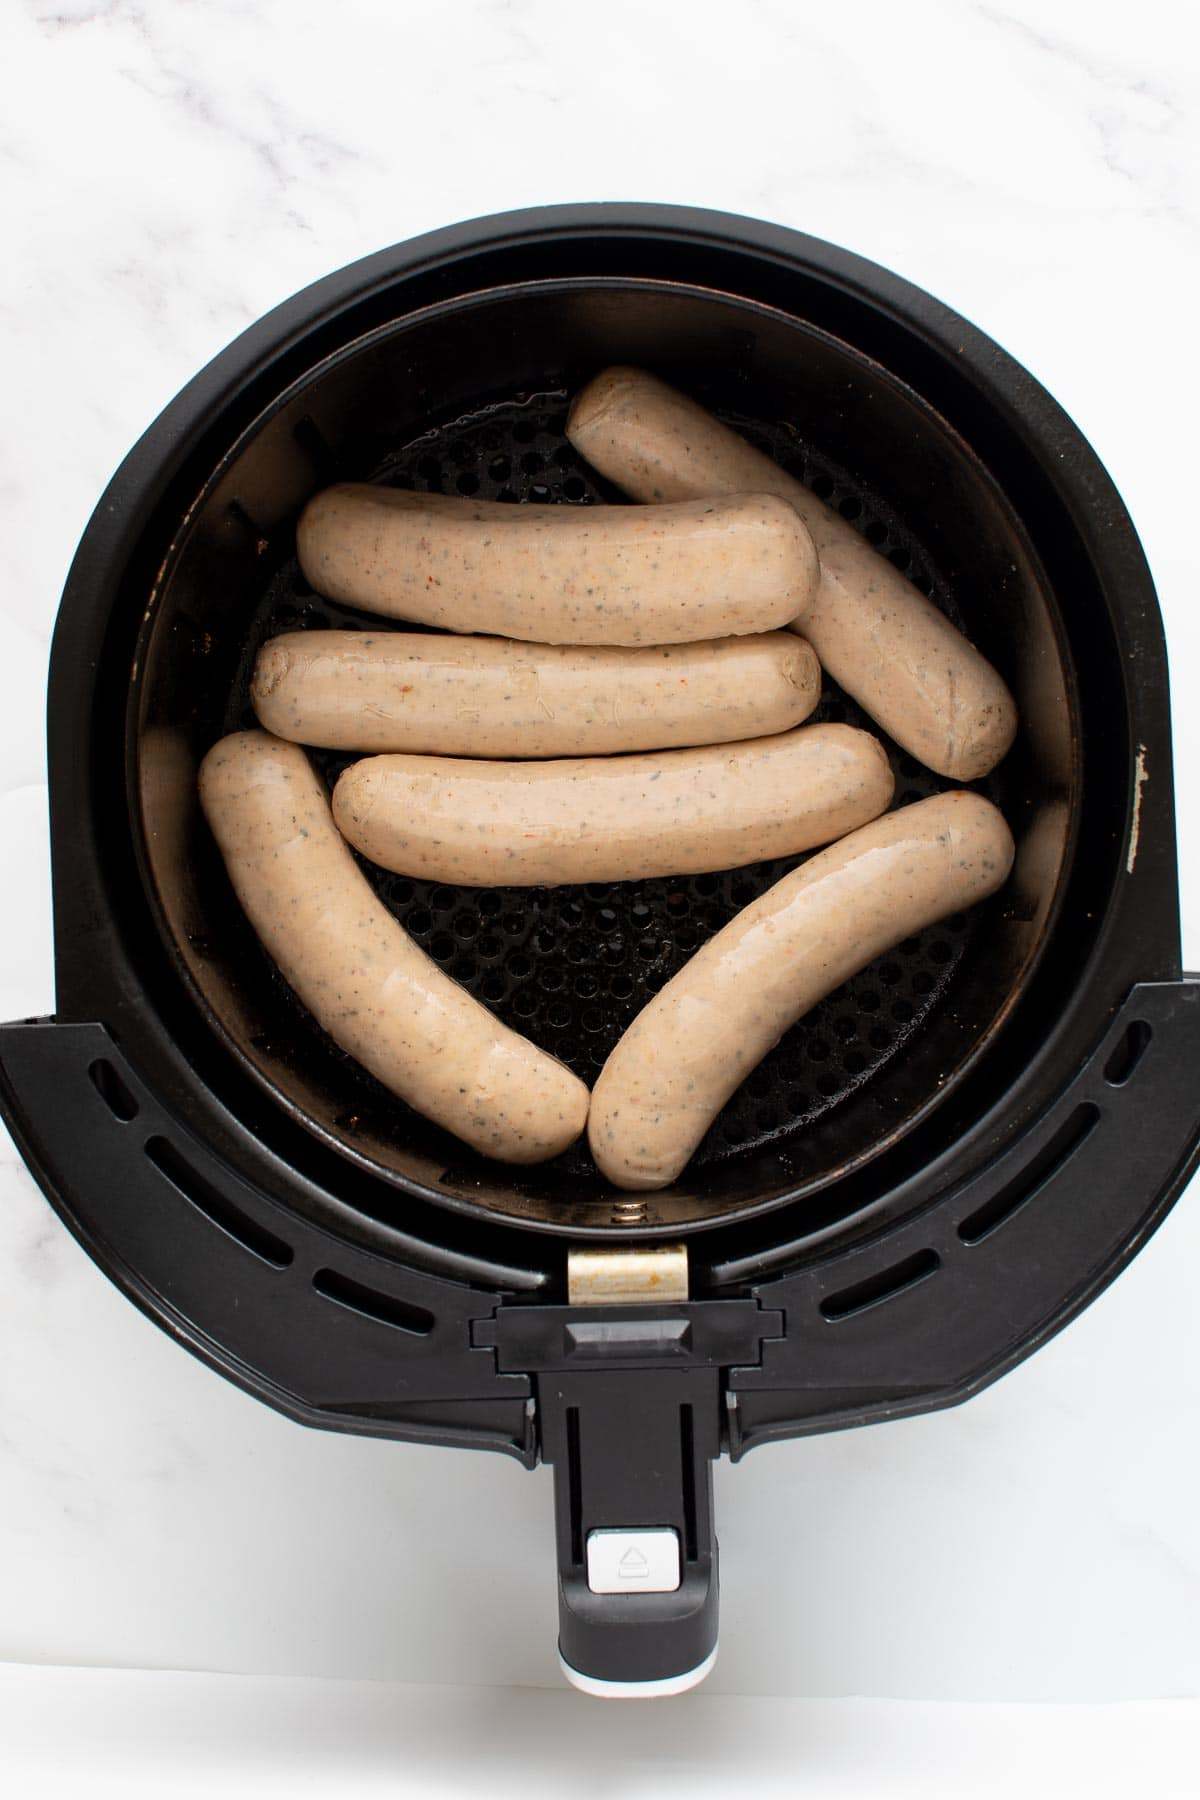 Uncooked brats in an air fryer.